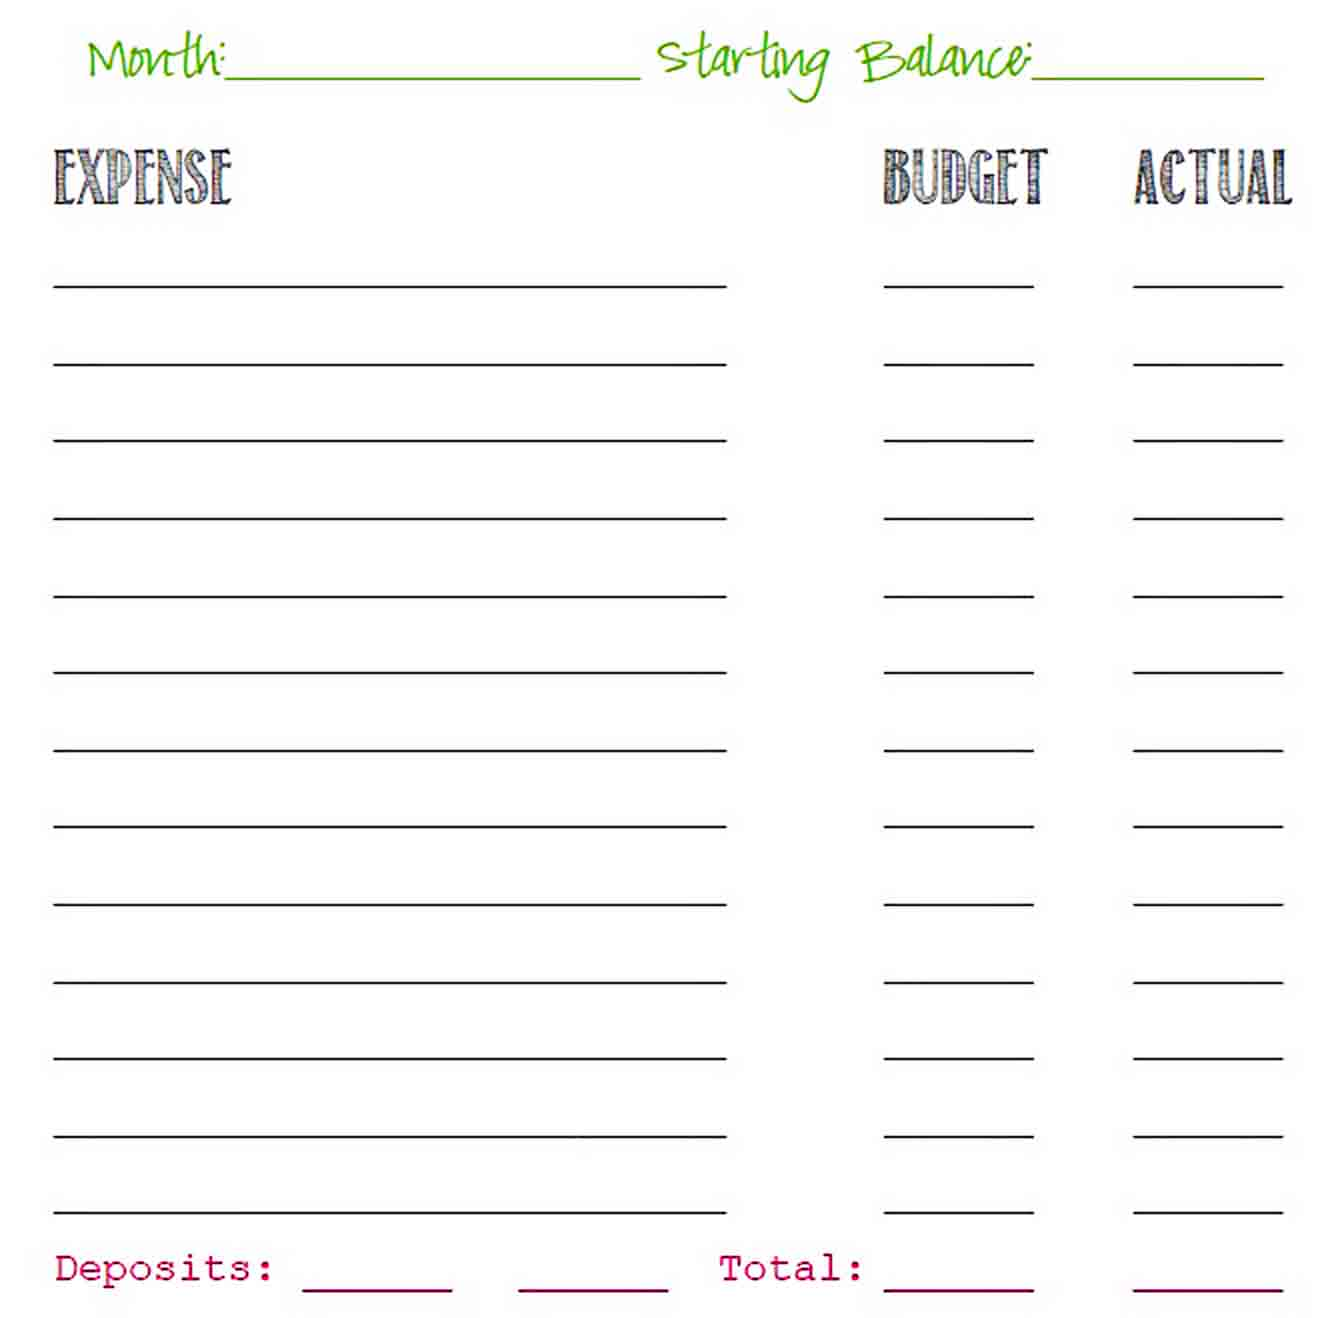 Simple Budget Template Printable sample